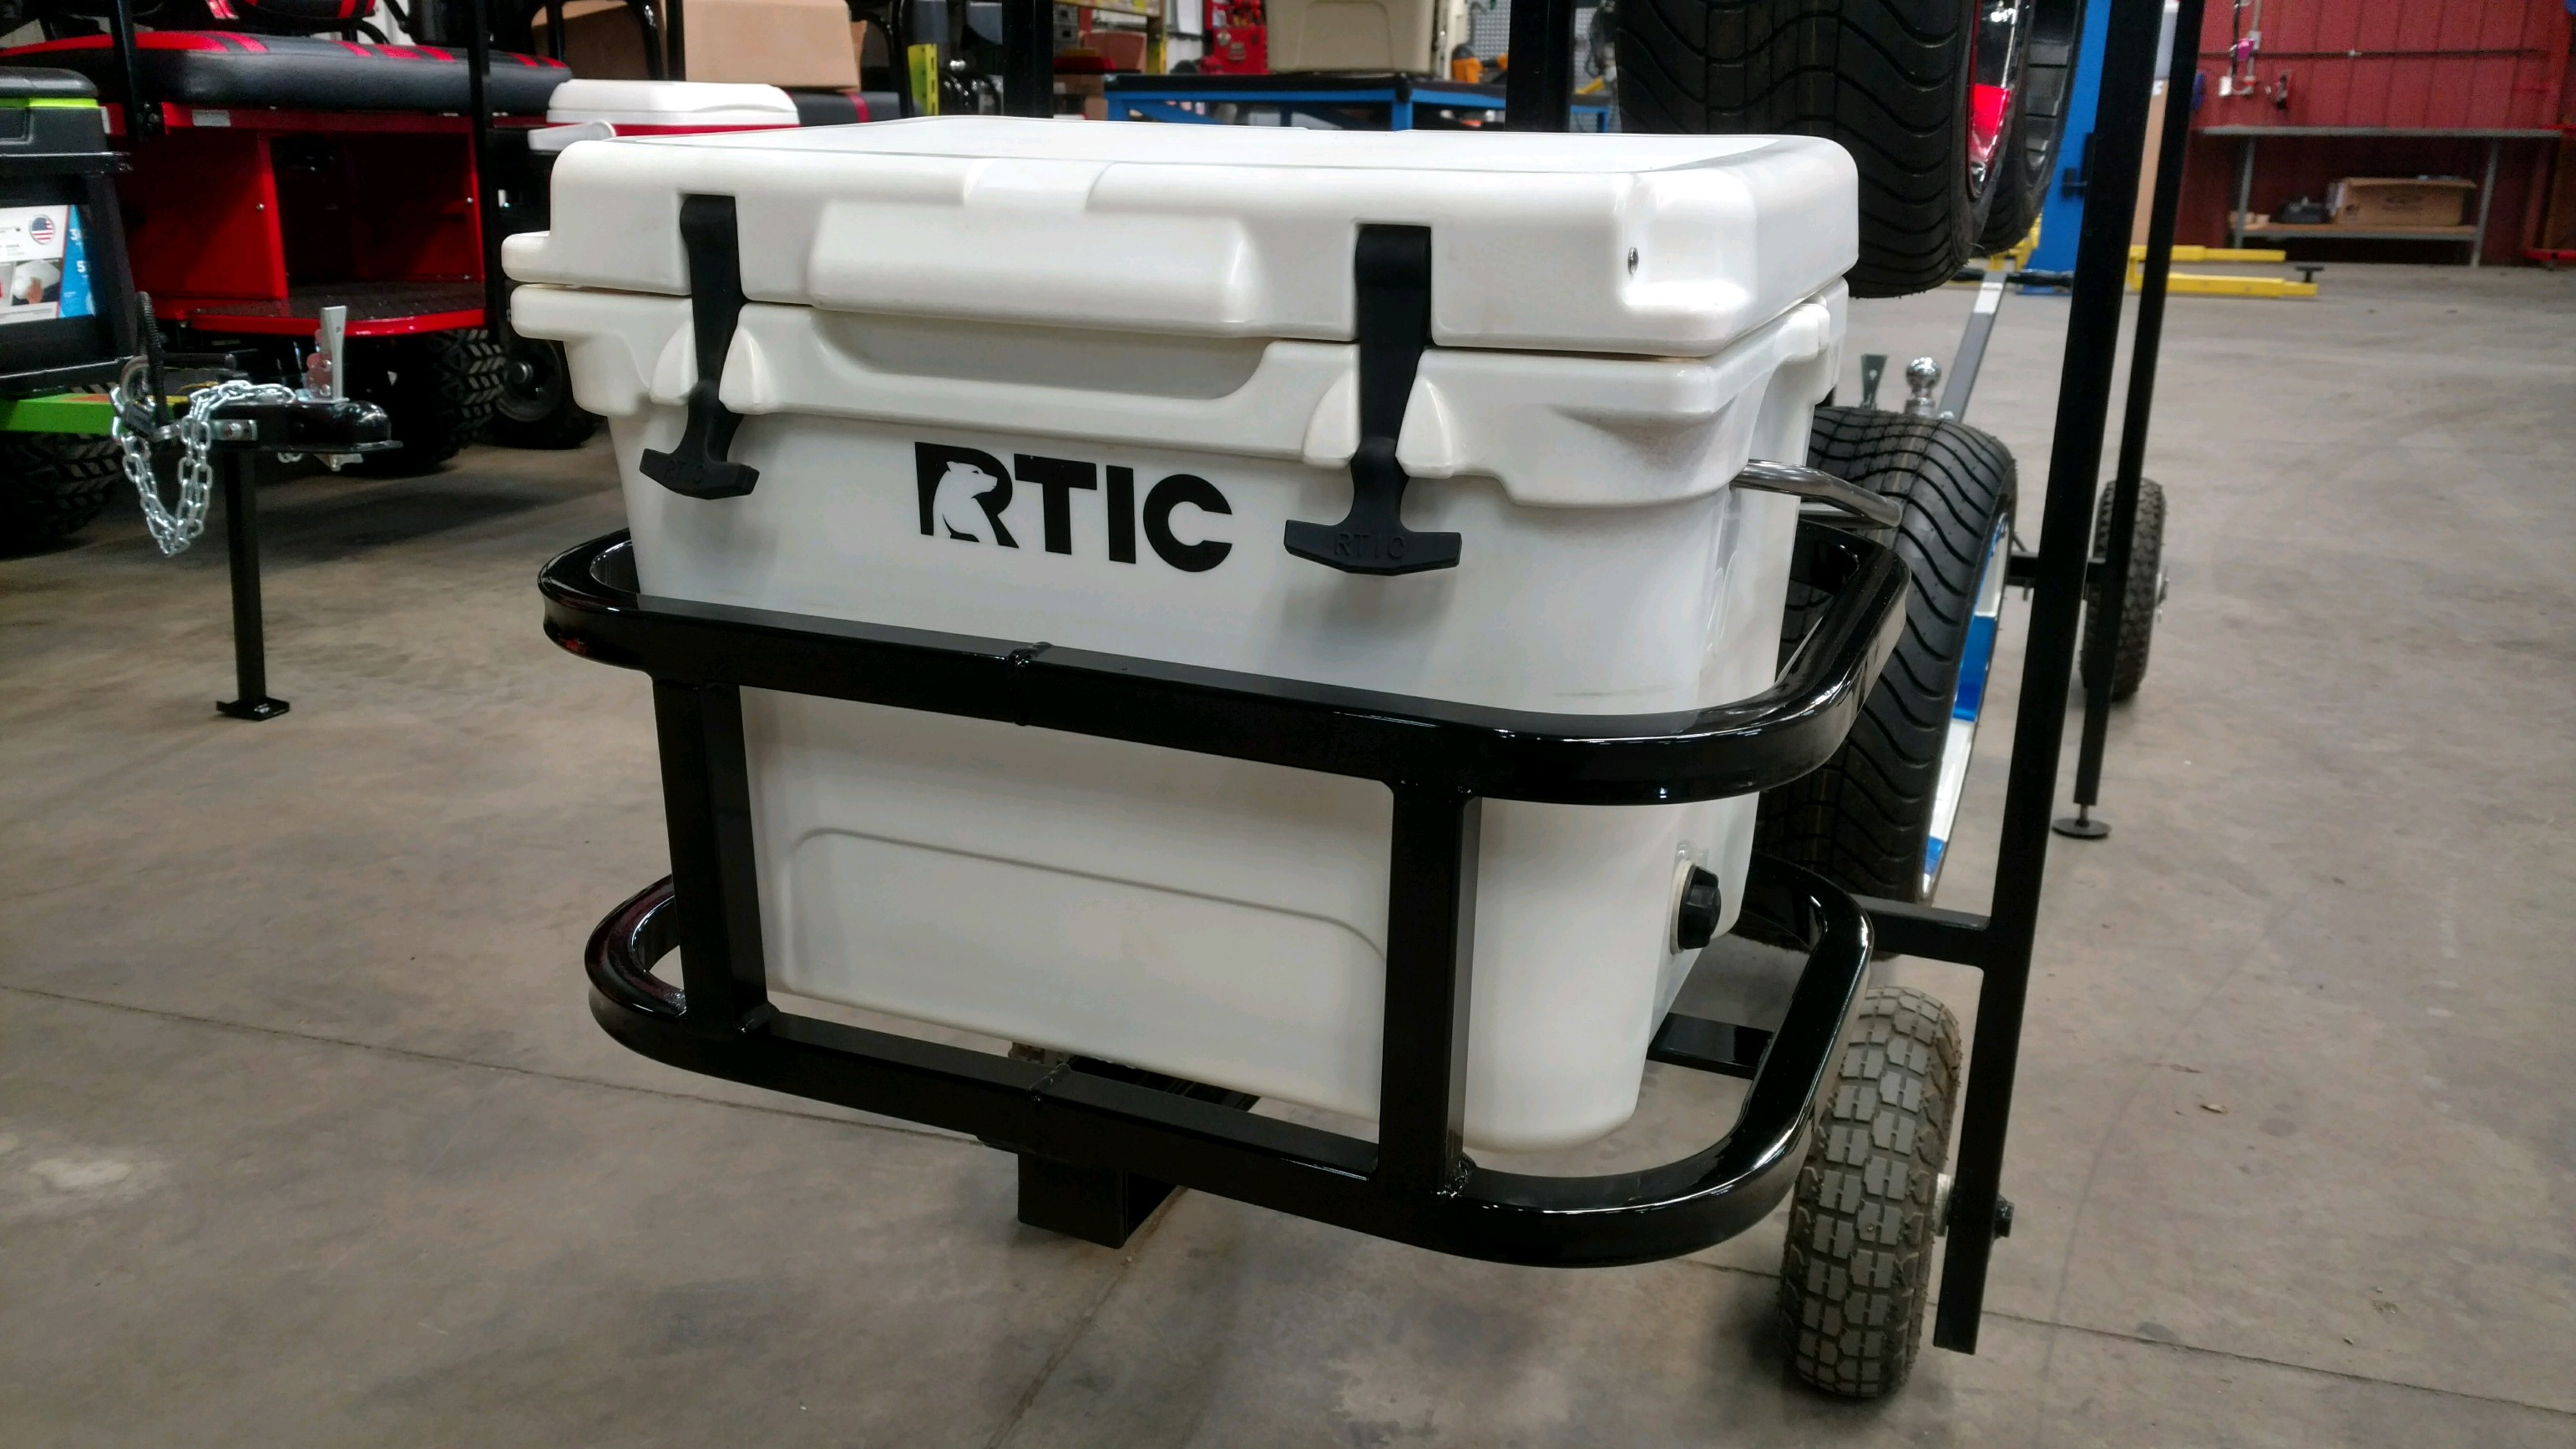 RTIC 20/Grizzly 20/Igloo 24 Hitch Cooler Carrier